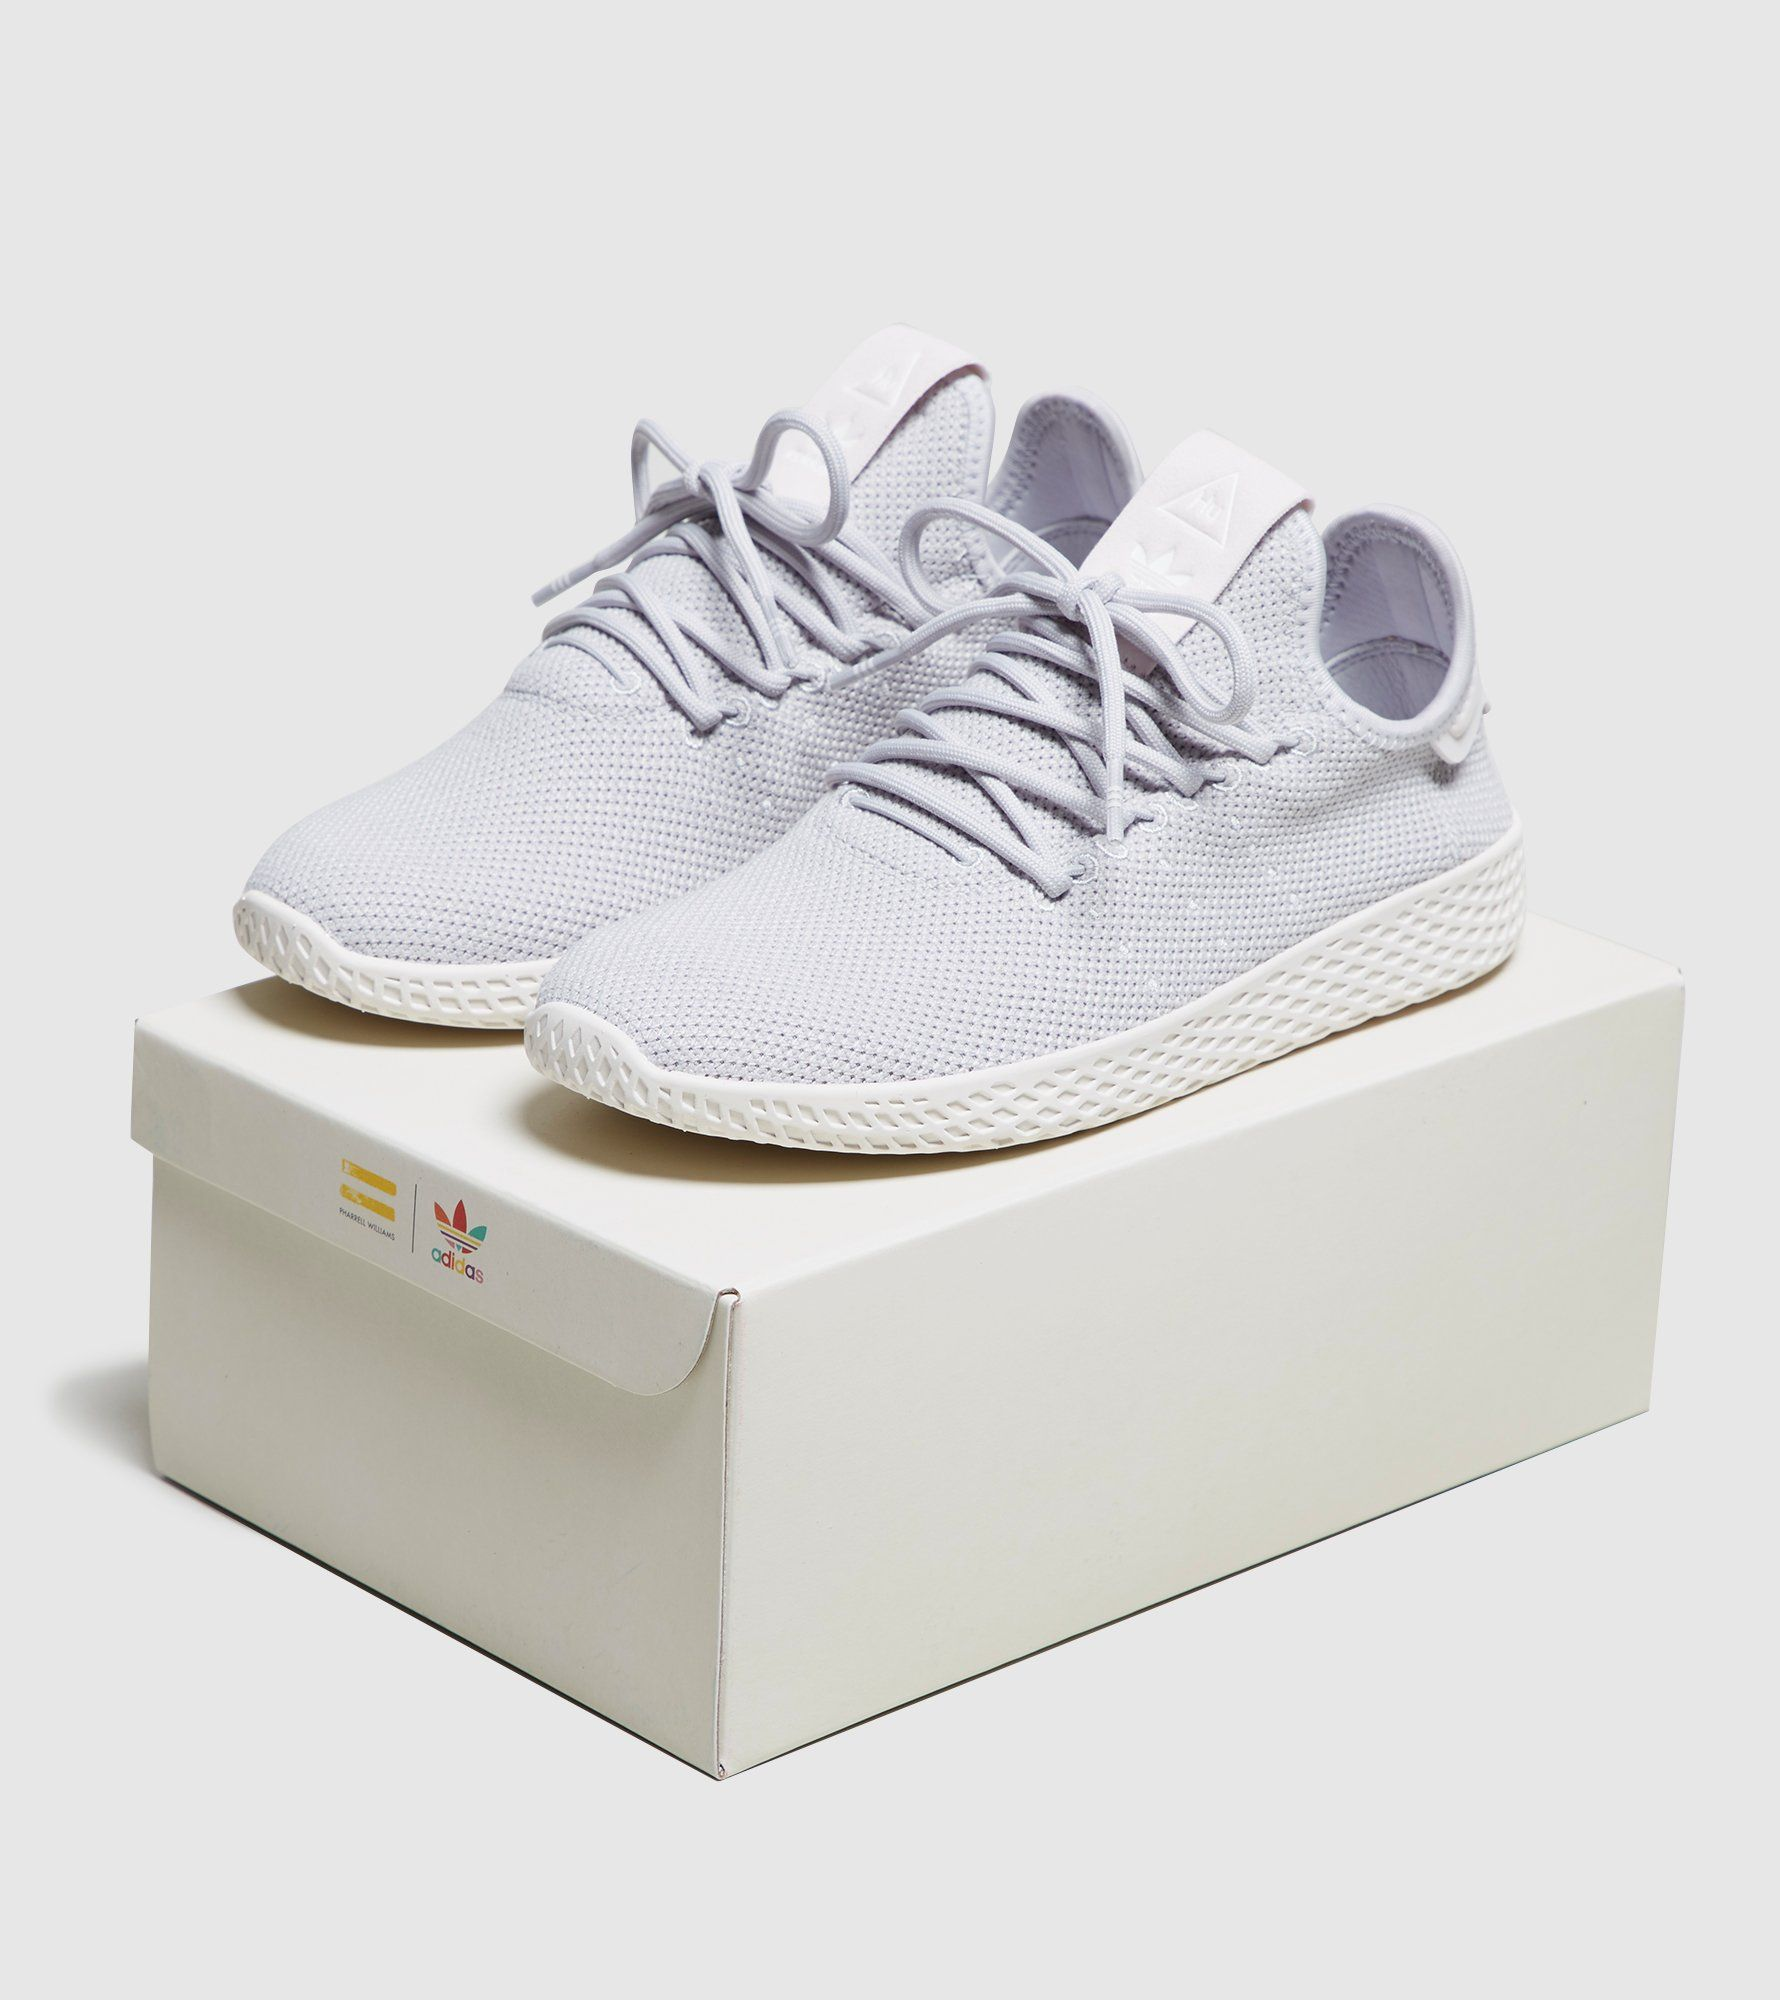 adidas Originals Pharrell Williams Tennis Hu Trainers Women's